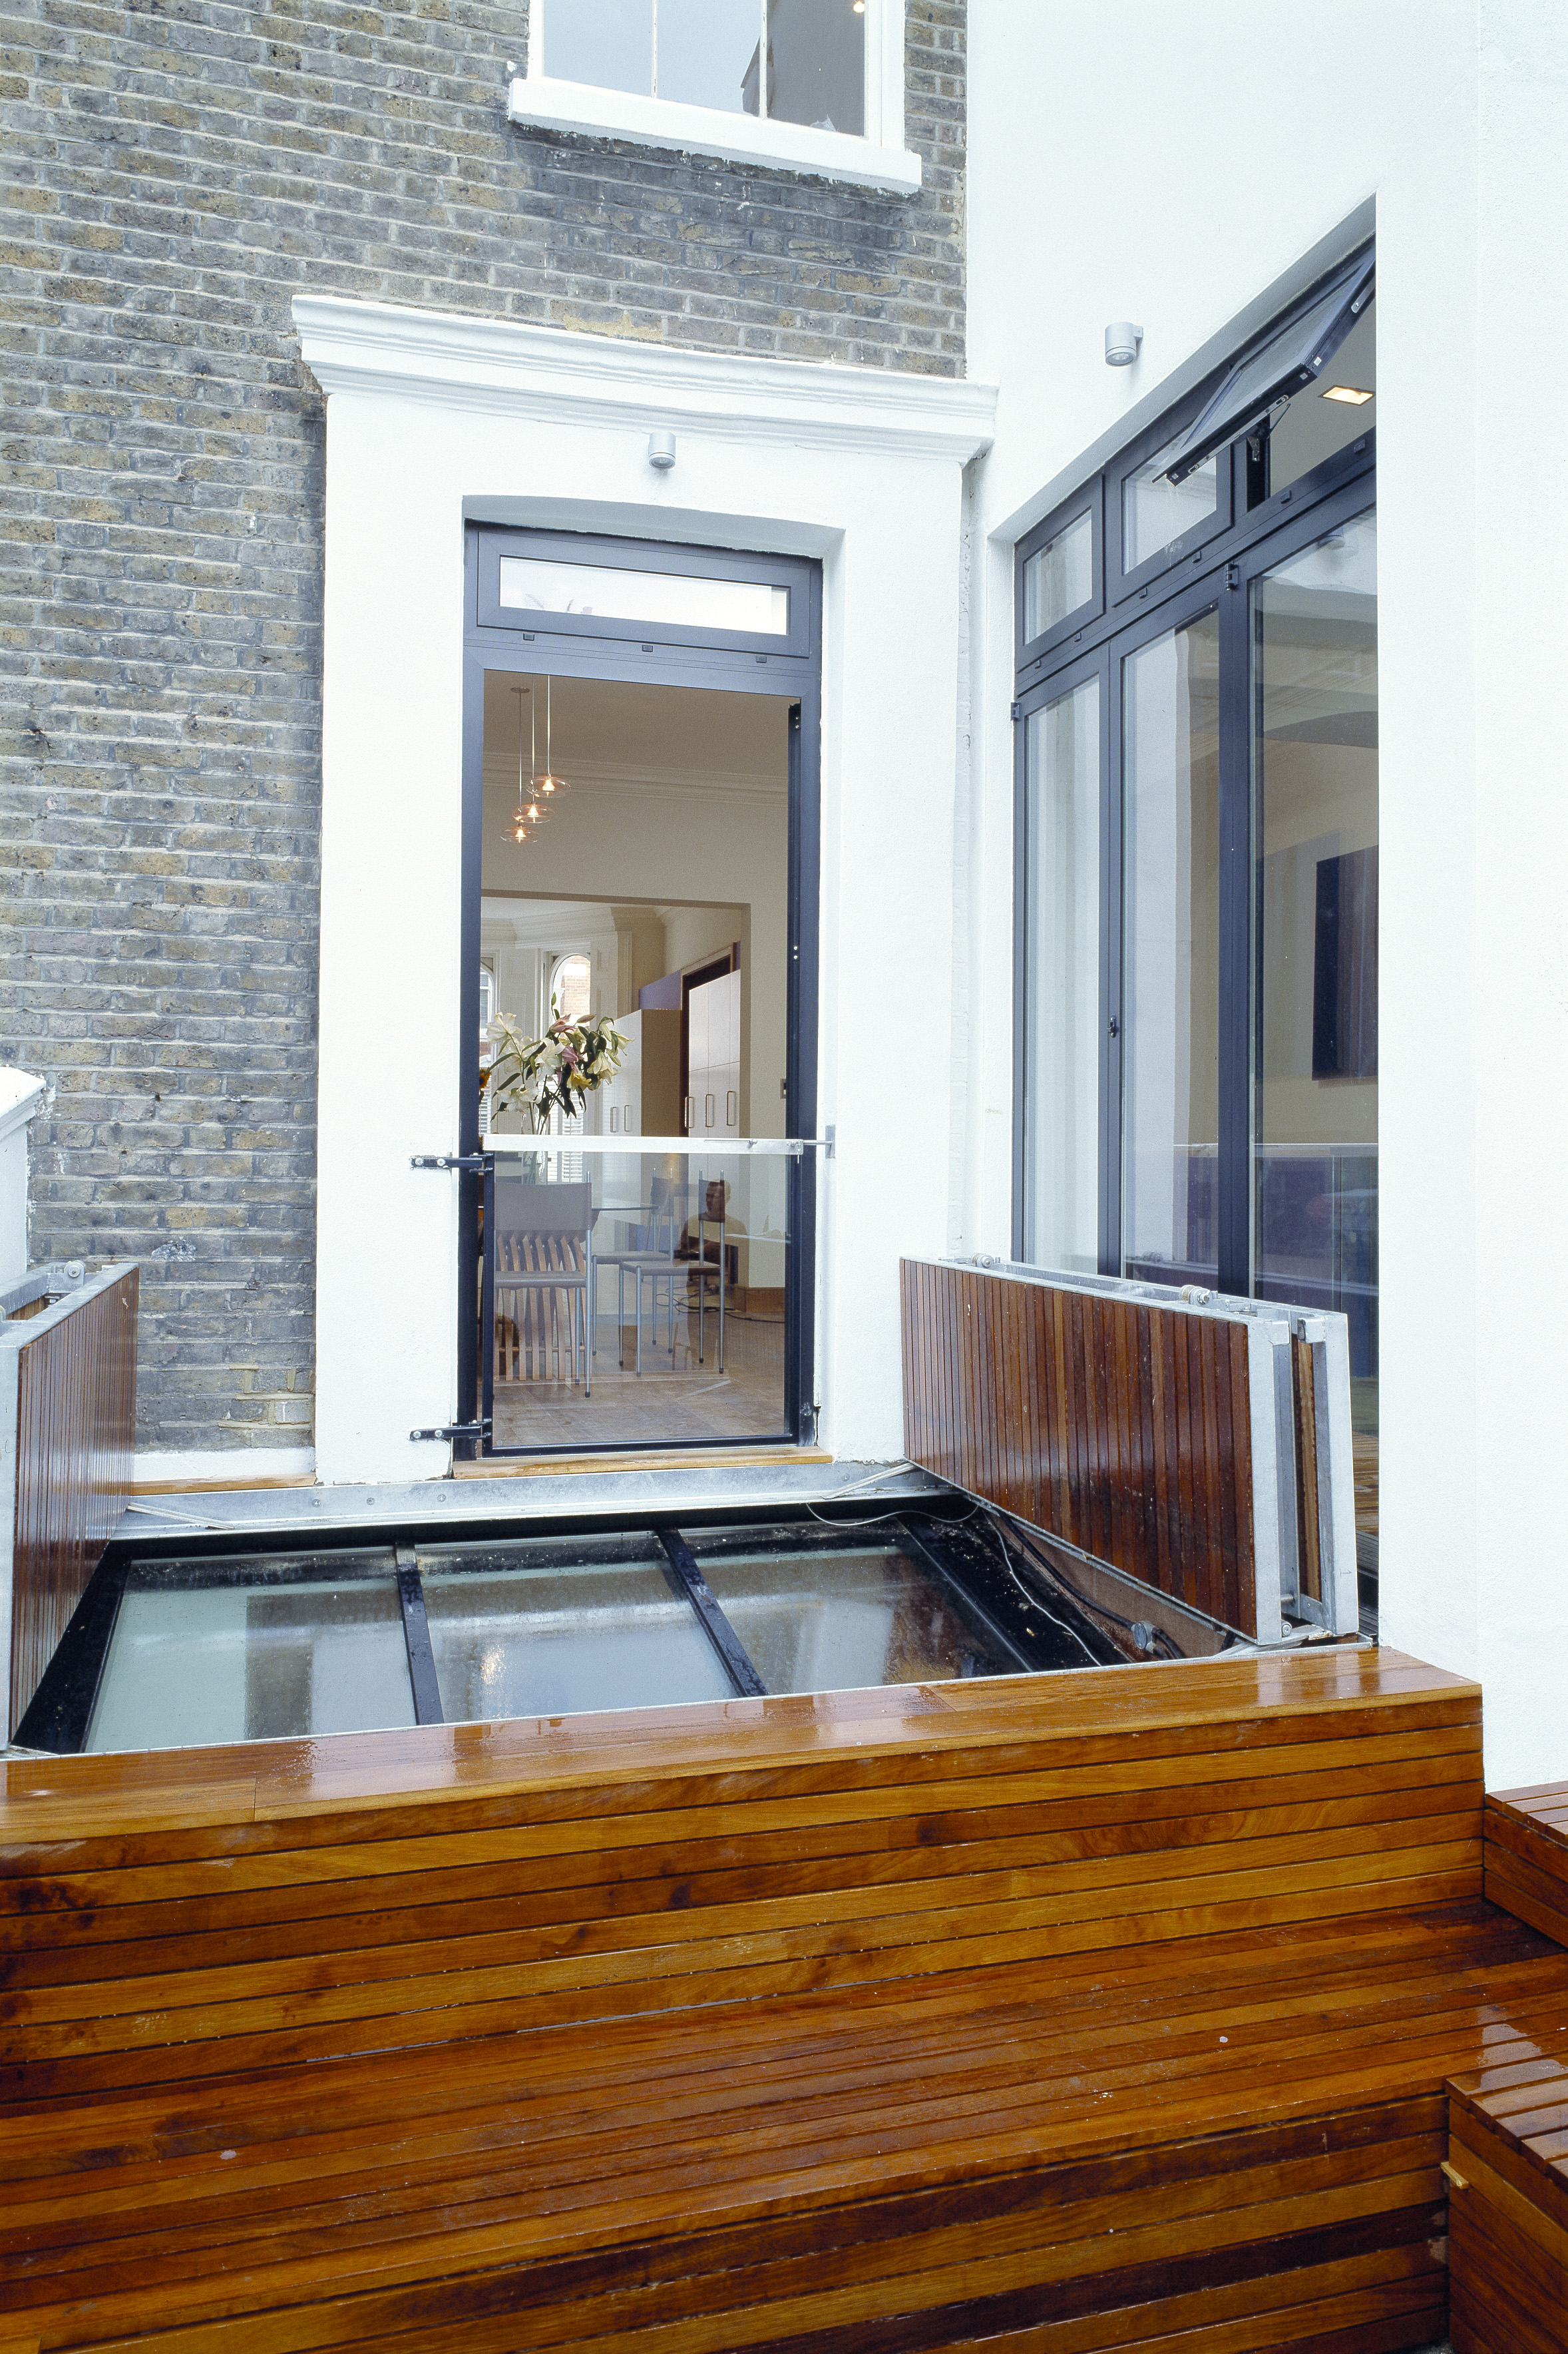 creativemass - basement, sliding roof light, terrace design, London